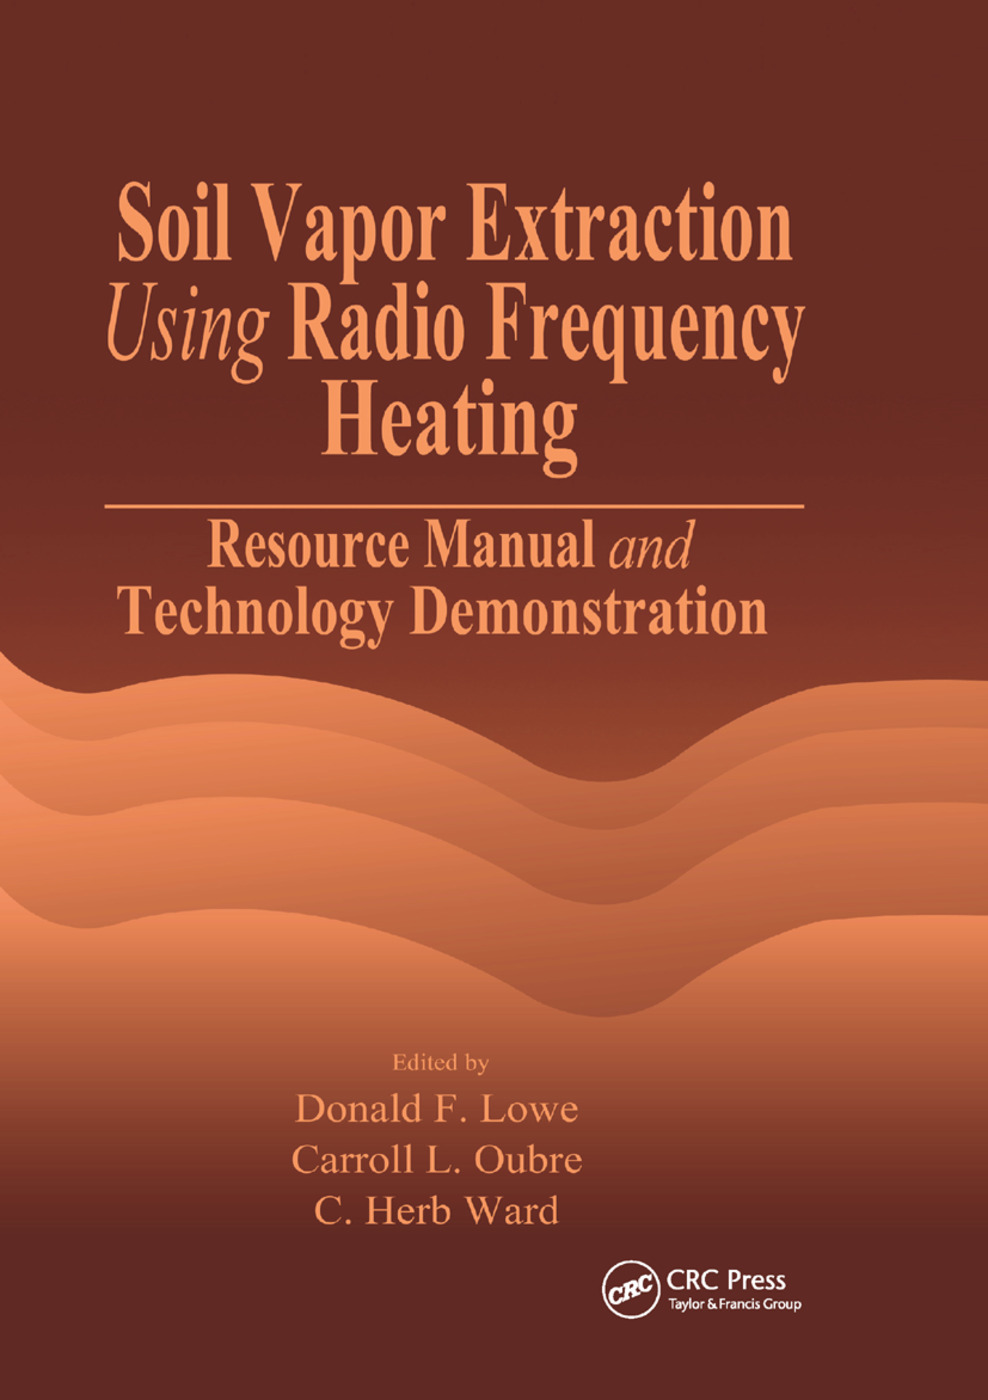 Soil Vapor Extraction Using Radio Frequency Heating: Resource Manual and Technology Demonstration, 1st Edition (Paperback) book cover